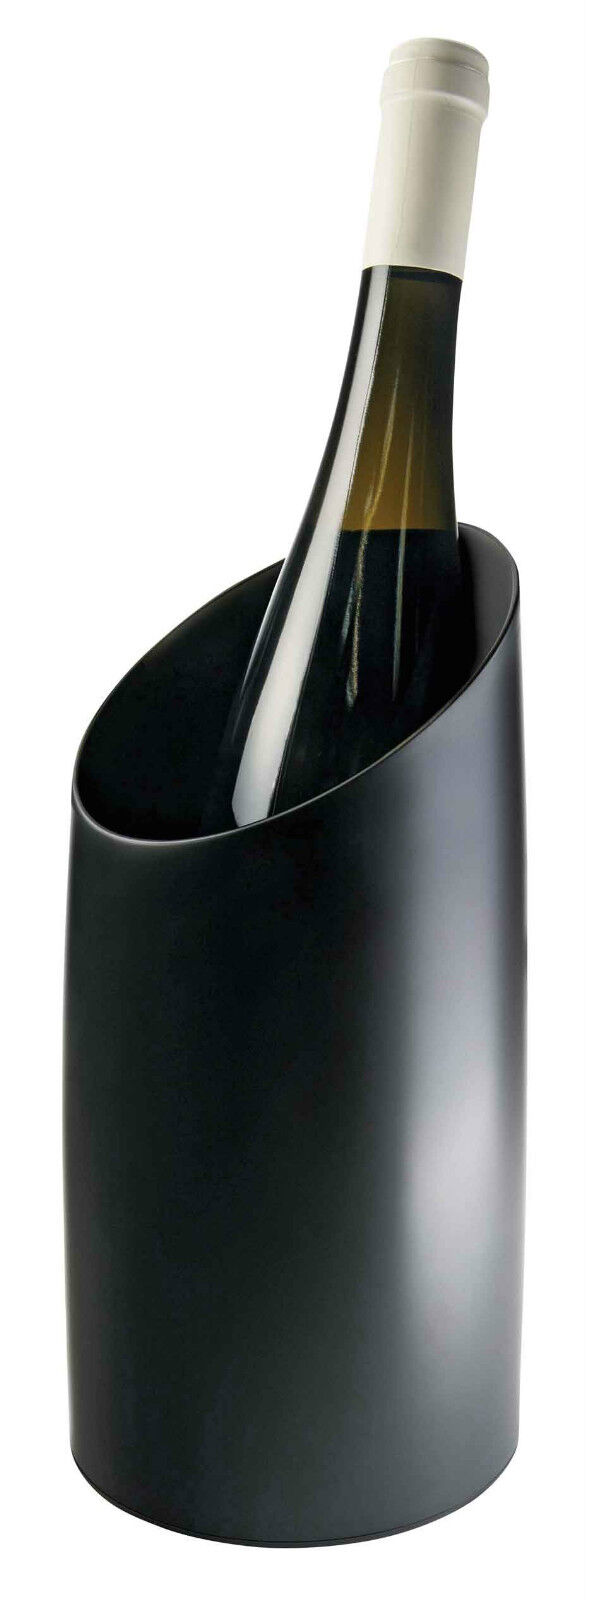 Nuance Wine Cooler Black RRP $69.95 ABS w/rubbercoating SAVE